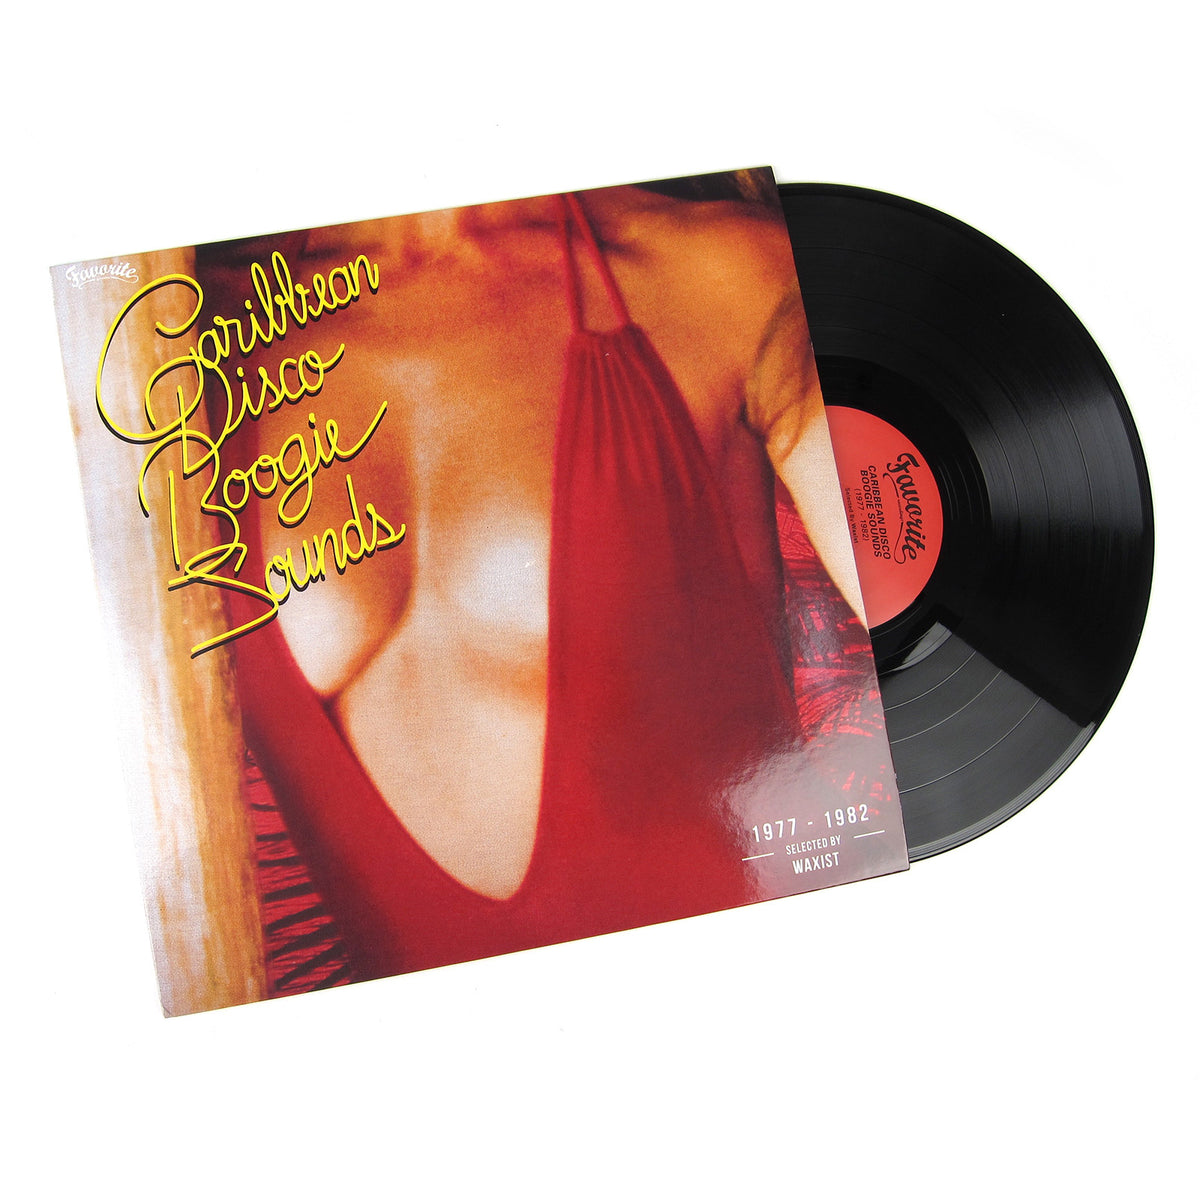 Favorite Recordings: Caribbean Disco Boogie Sounds 1977-1982 Vinyl LP